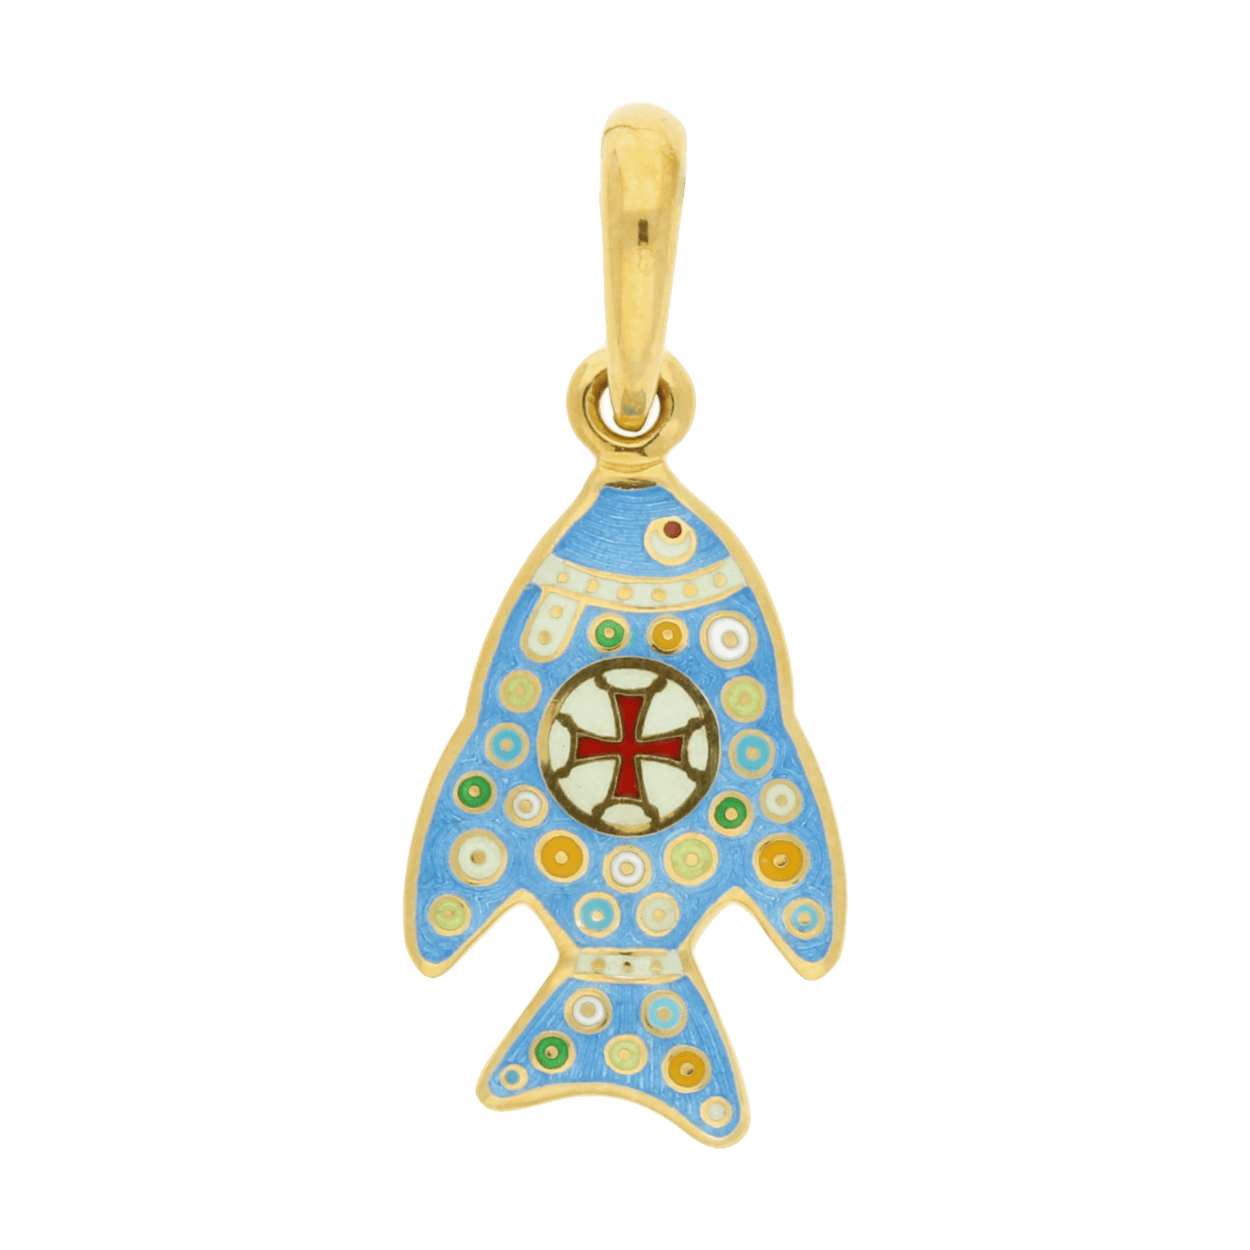 christian-russian-orthodox-silver-enamaled-pendant-fish-master-jeweler-fedorov